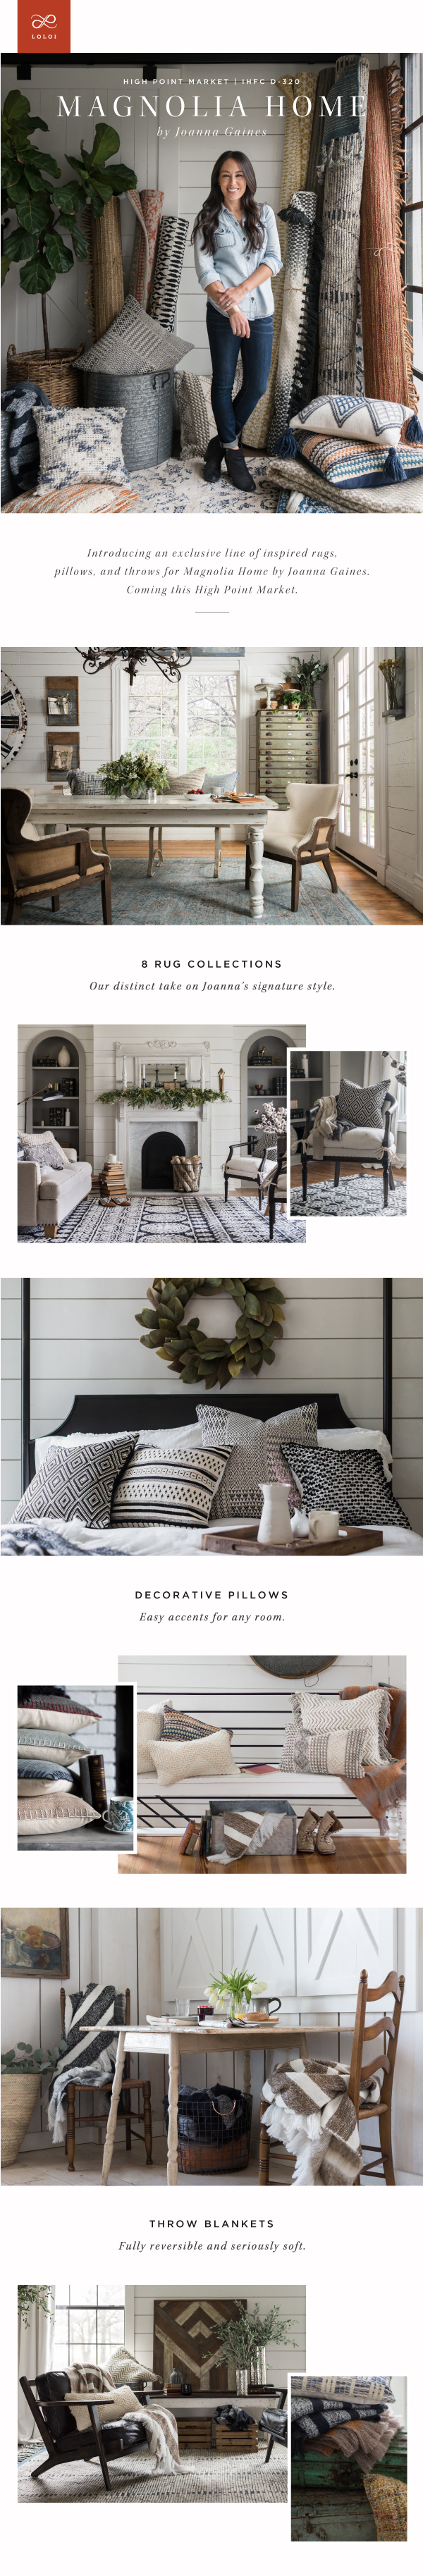 The Joanna Gaines Designed Magnolia Home Collection For Loloi Rugs